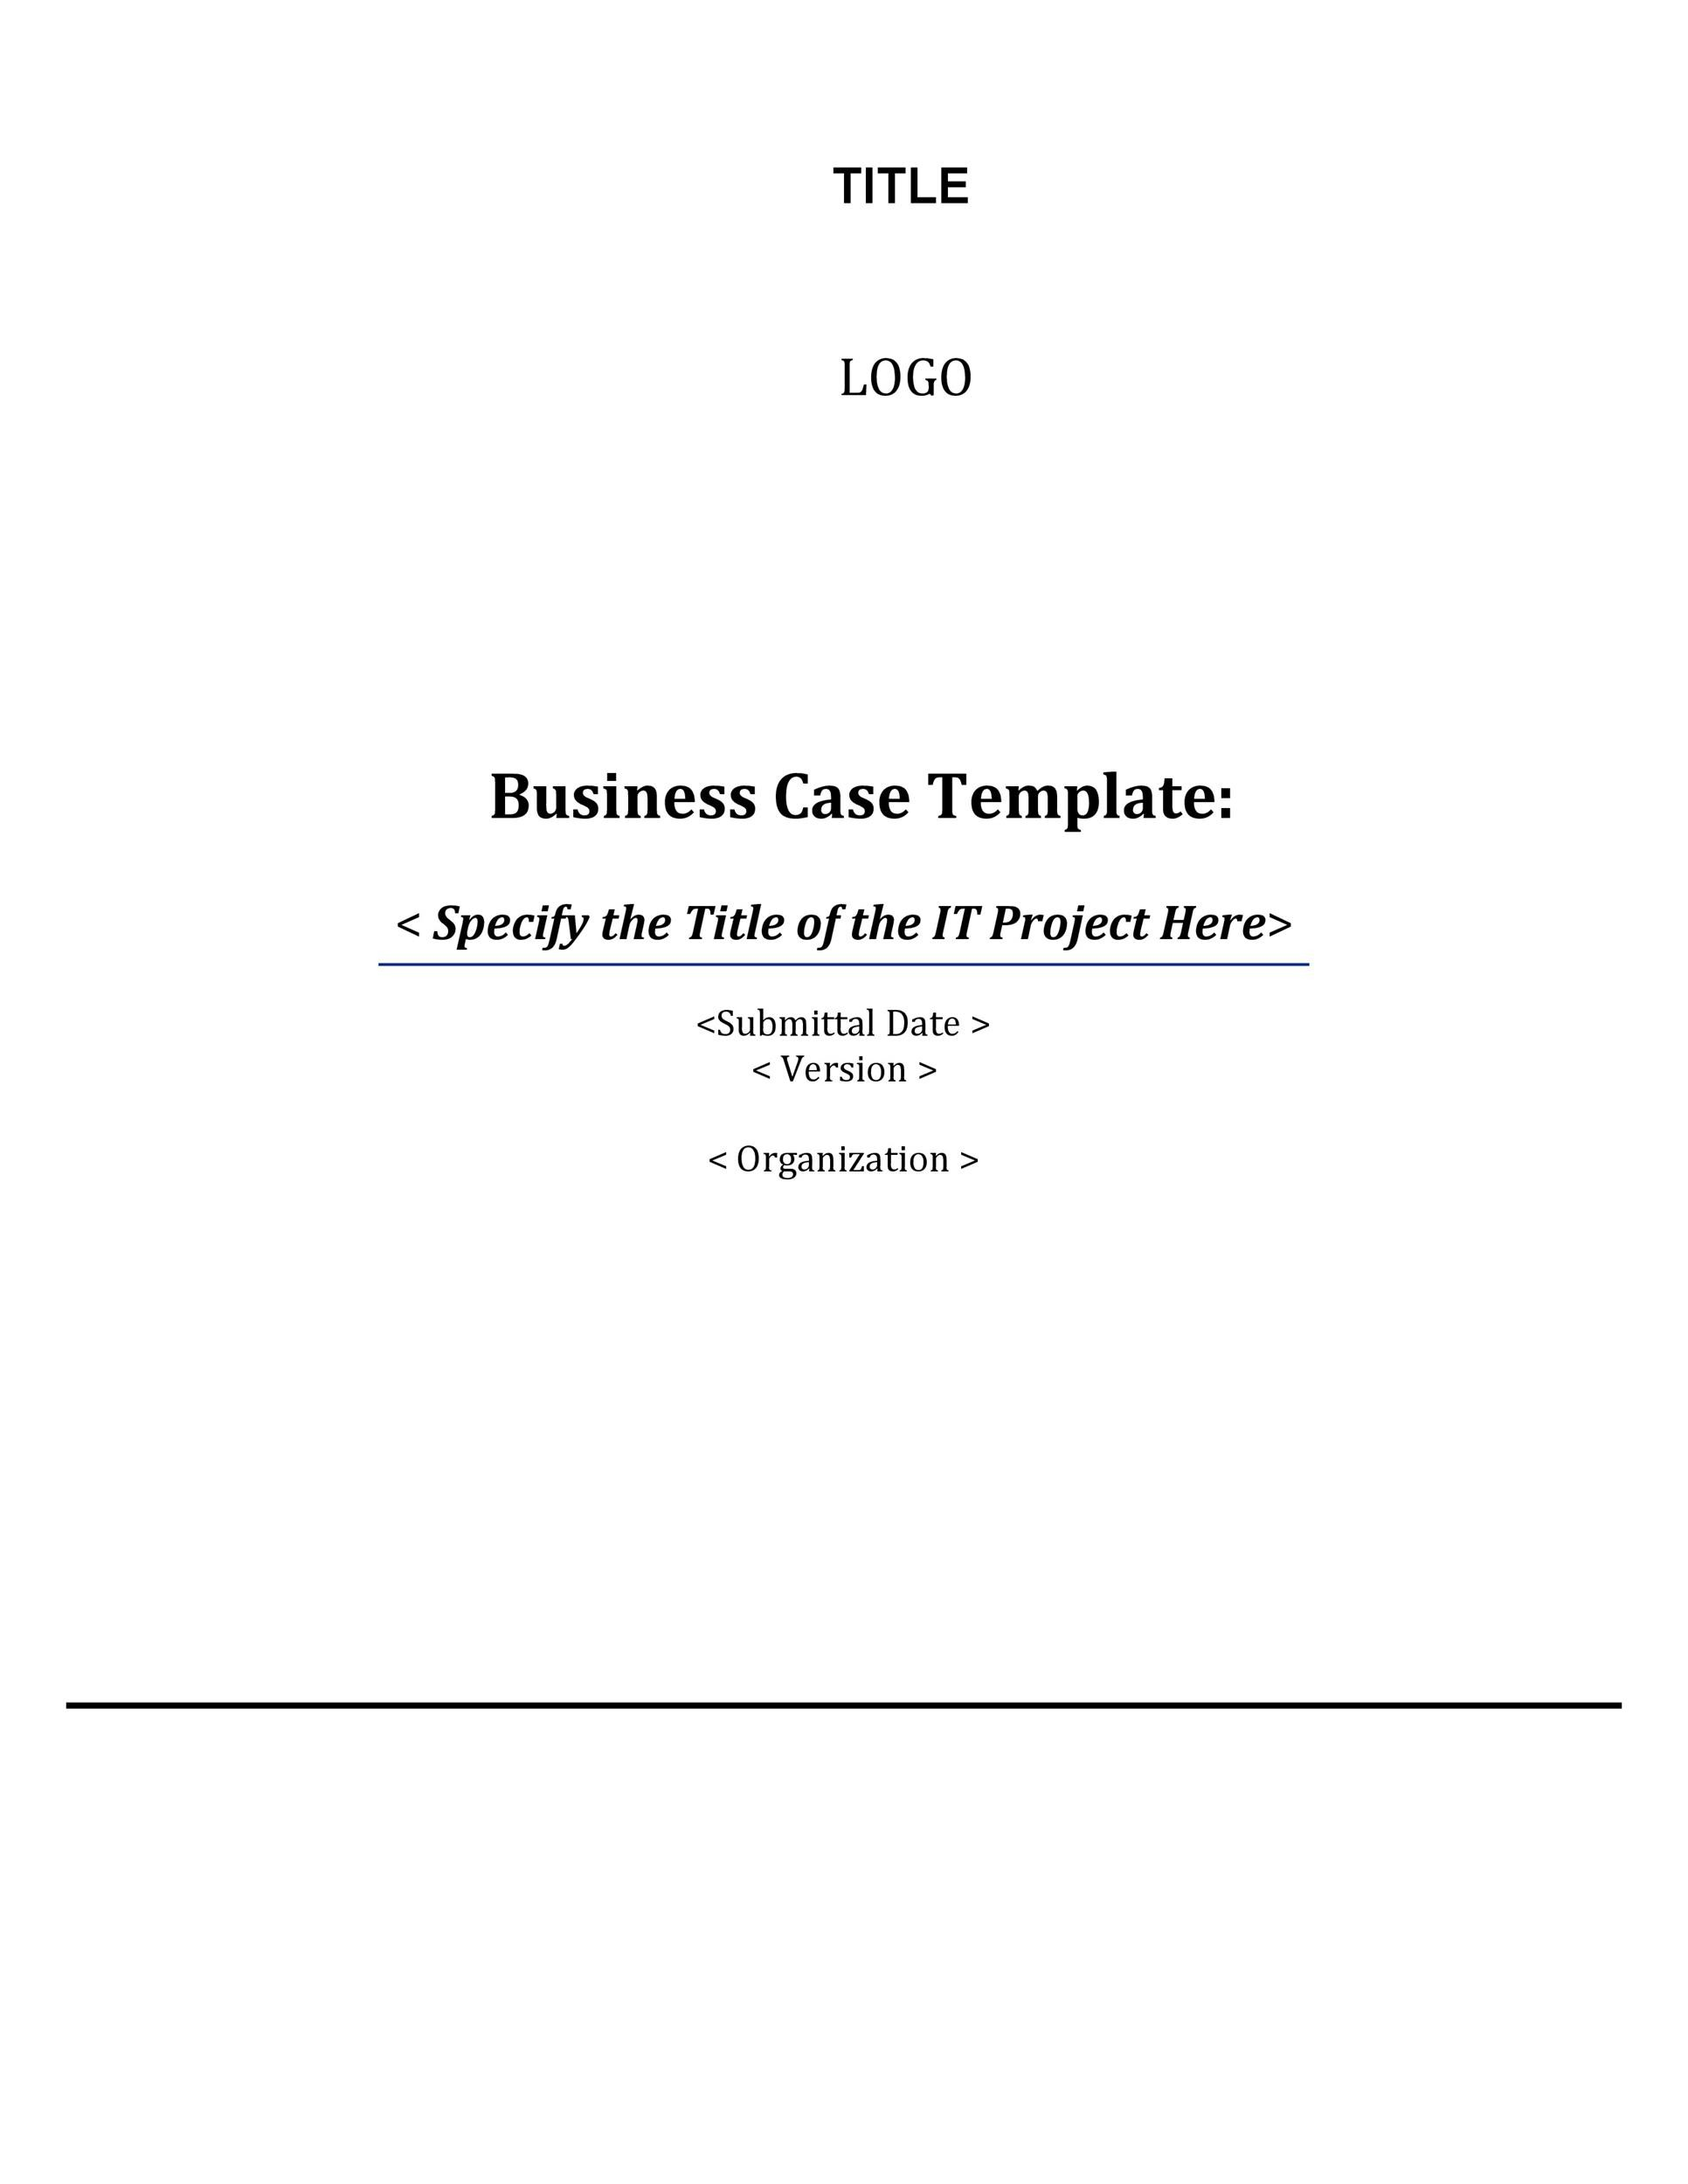 Free Business Case Template 09